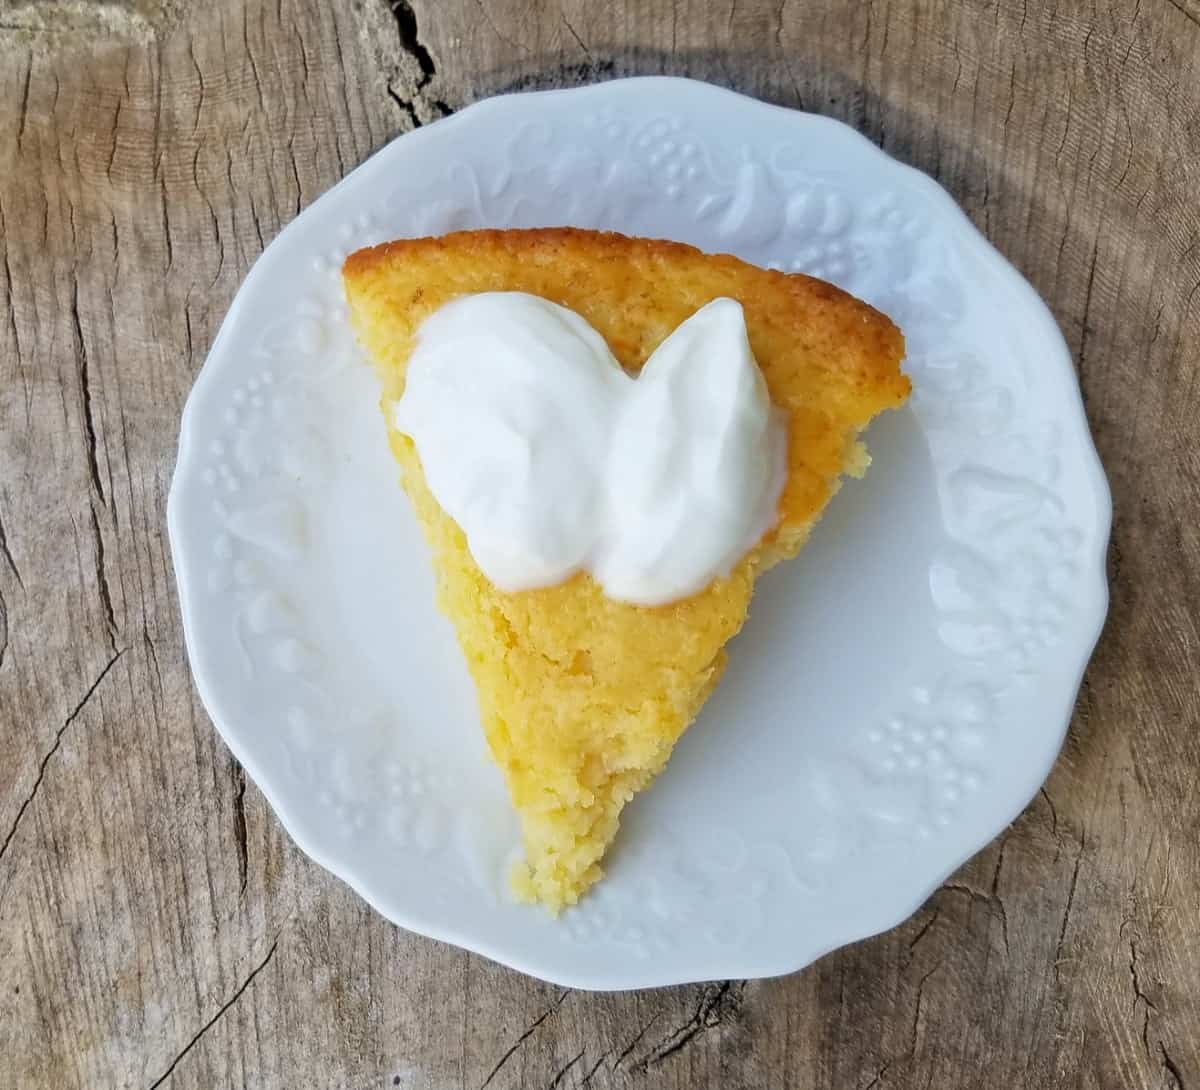 Piece of pineapple apple yogurt cake garnished with whipped cream on white plate.